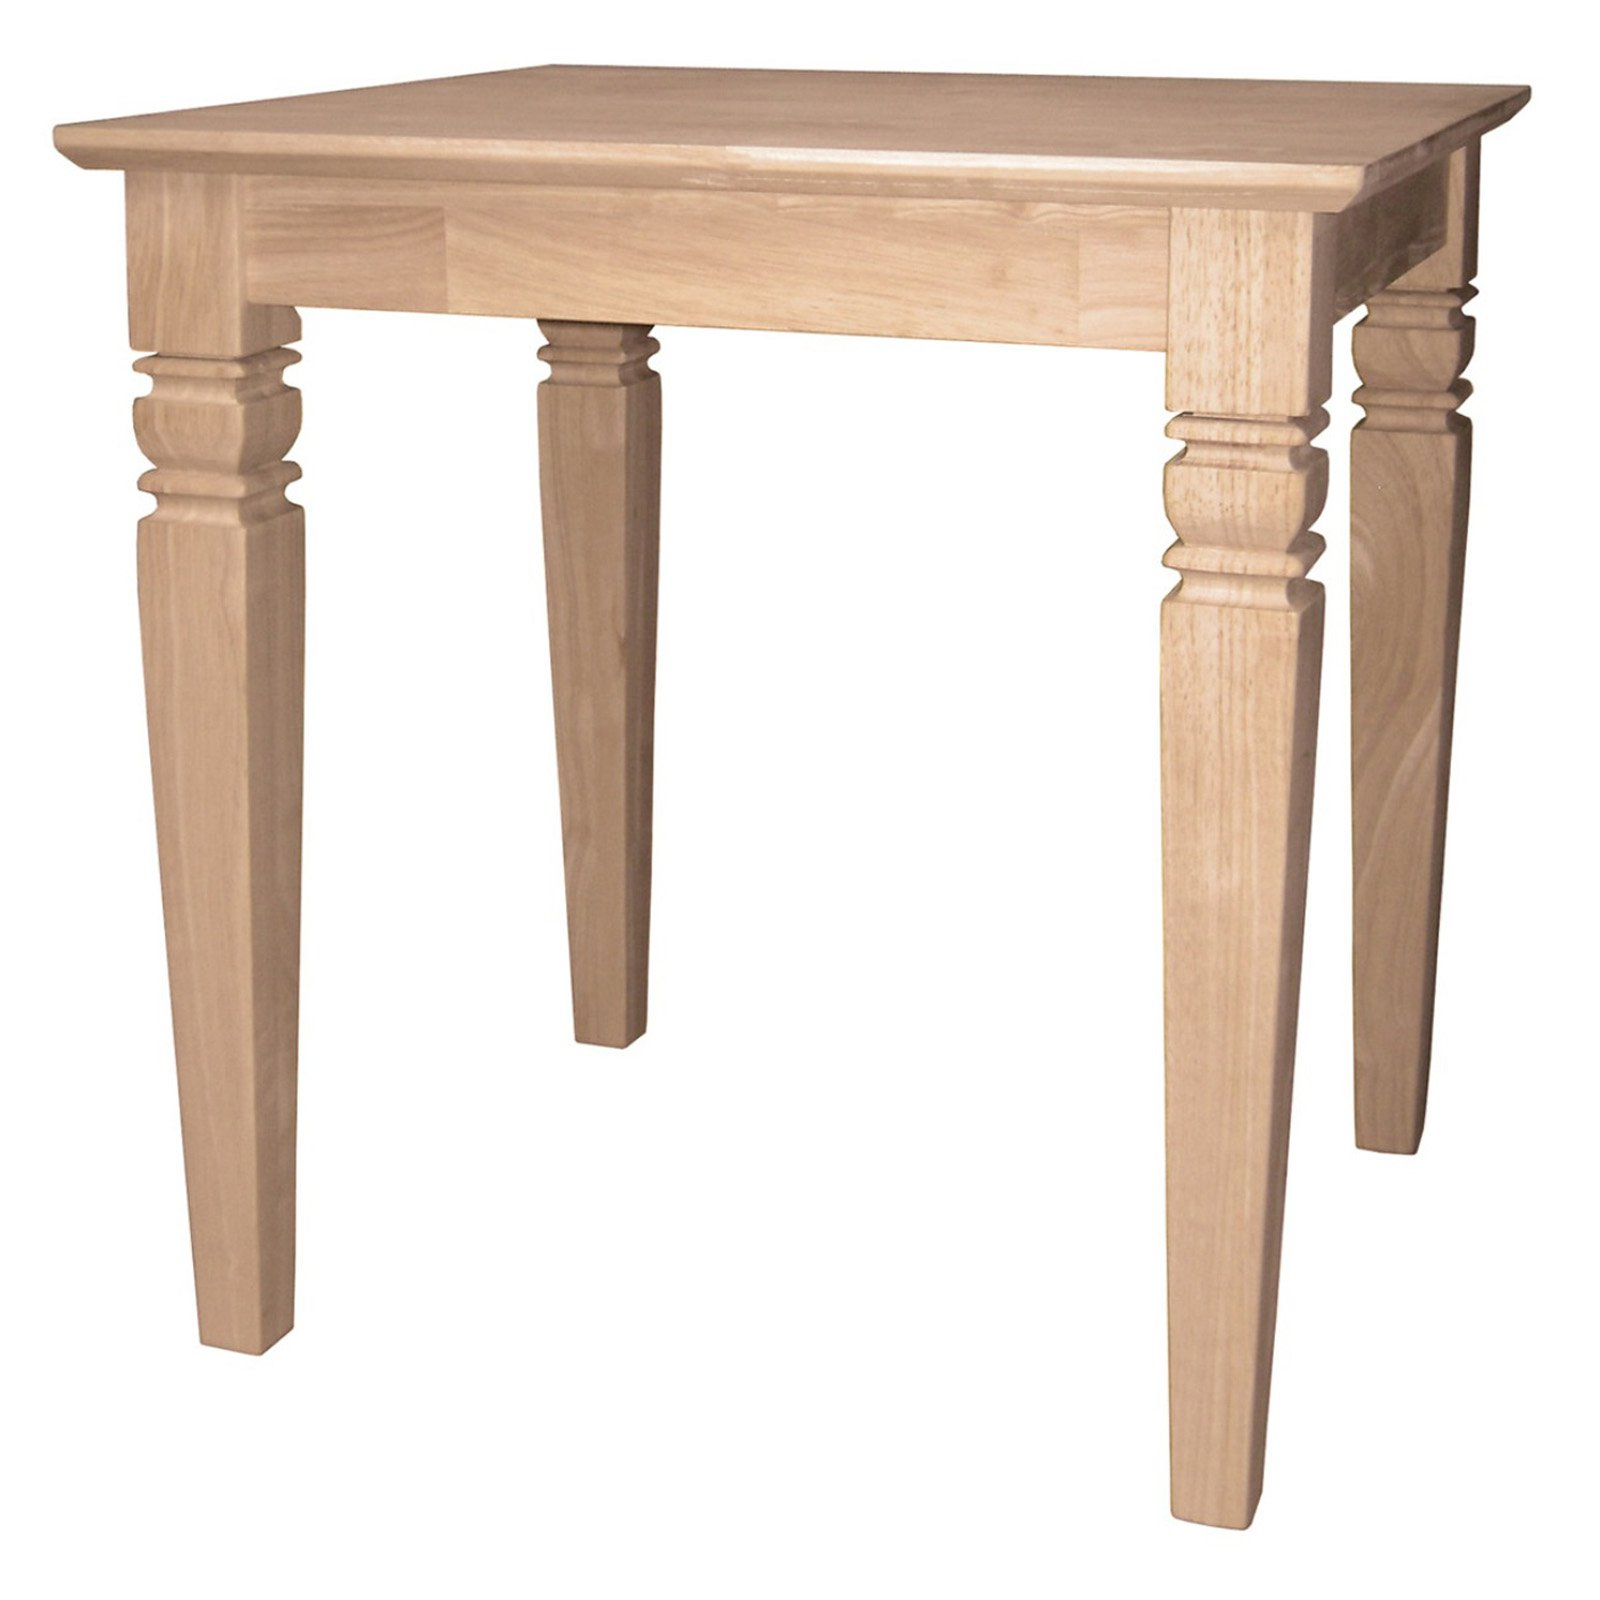 International Concepts Ot-60E Java End Table, Ready To Finish